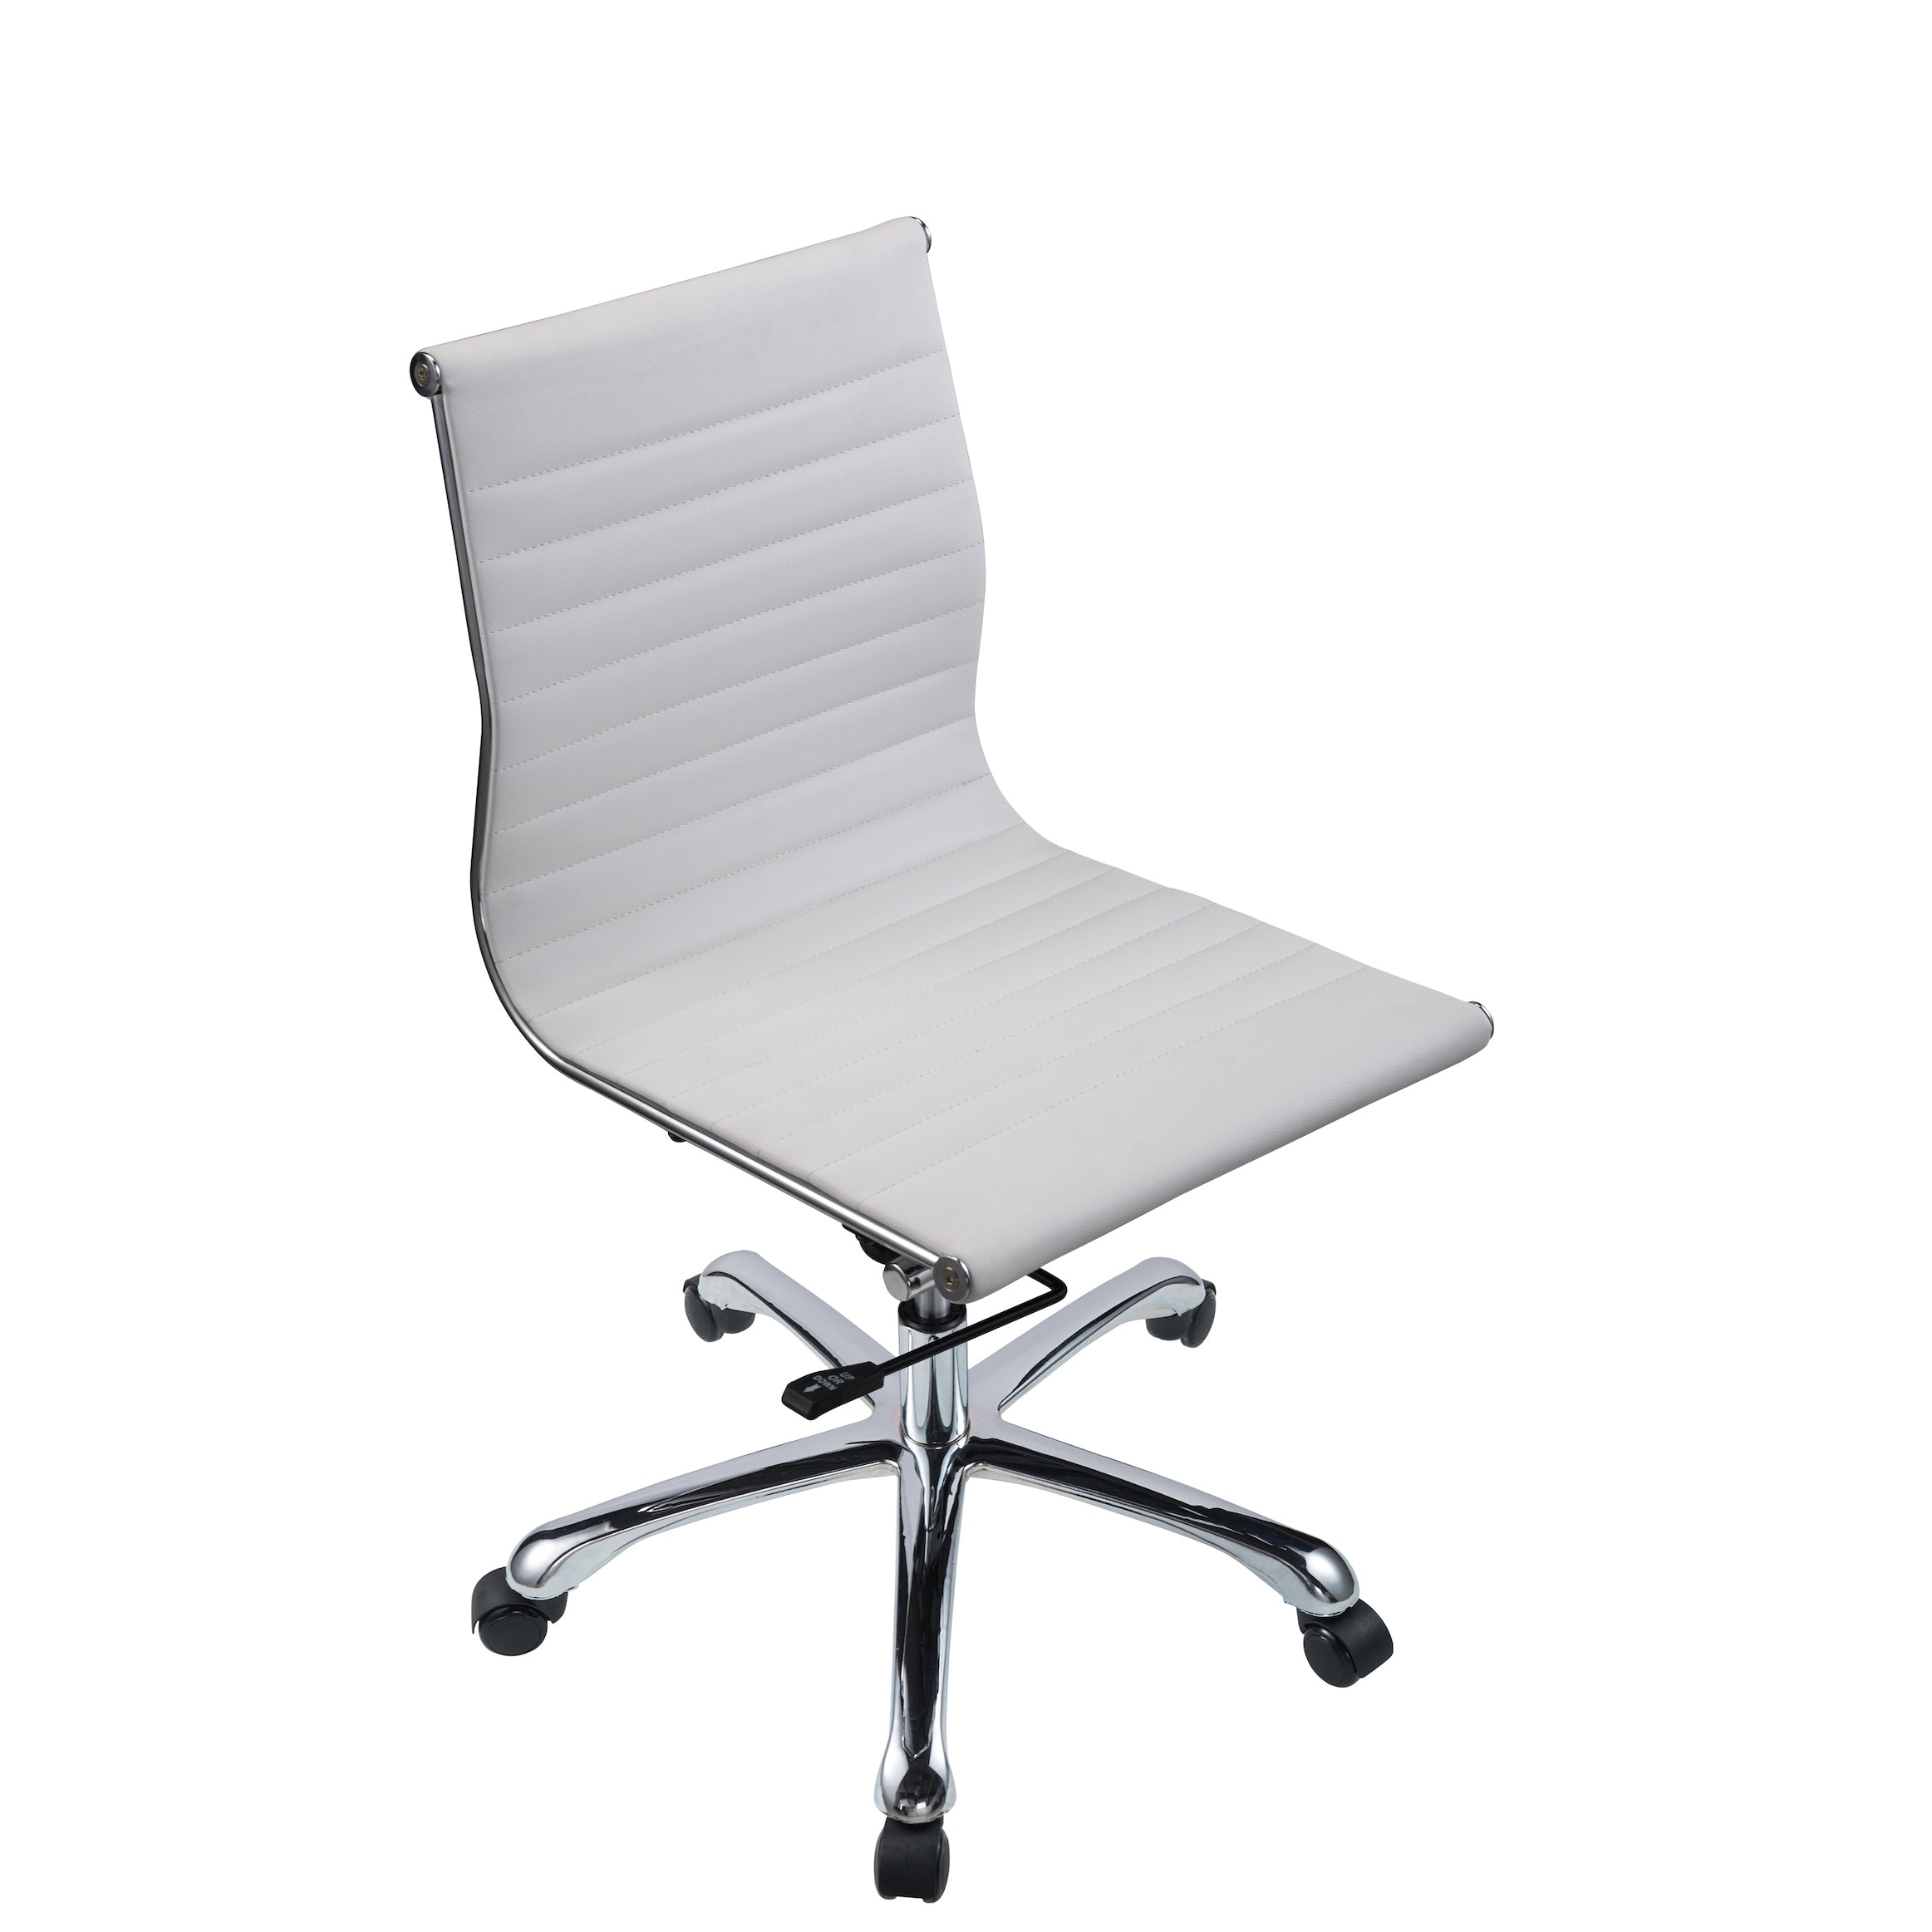 armless free and bark overstock chair product today shipping garden home in poly white office karlen black